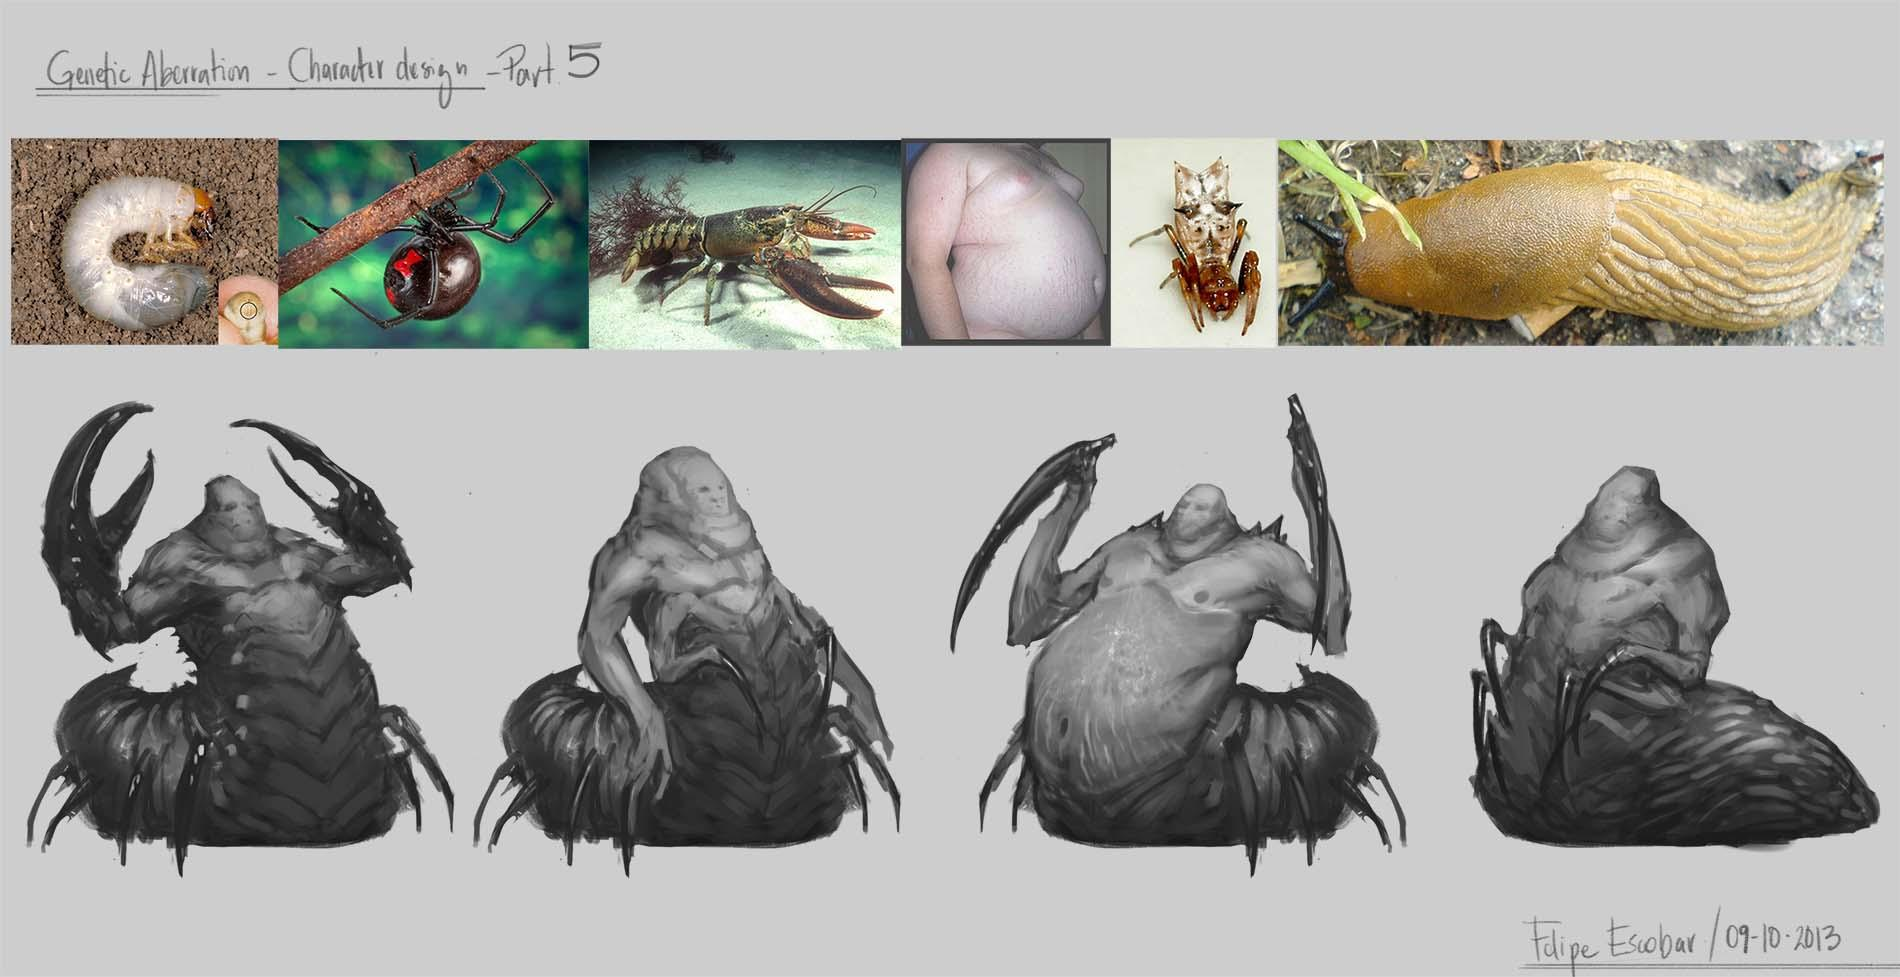 Genetic Aberration - Character design  - image 5 - student project